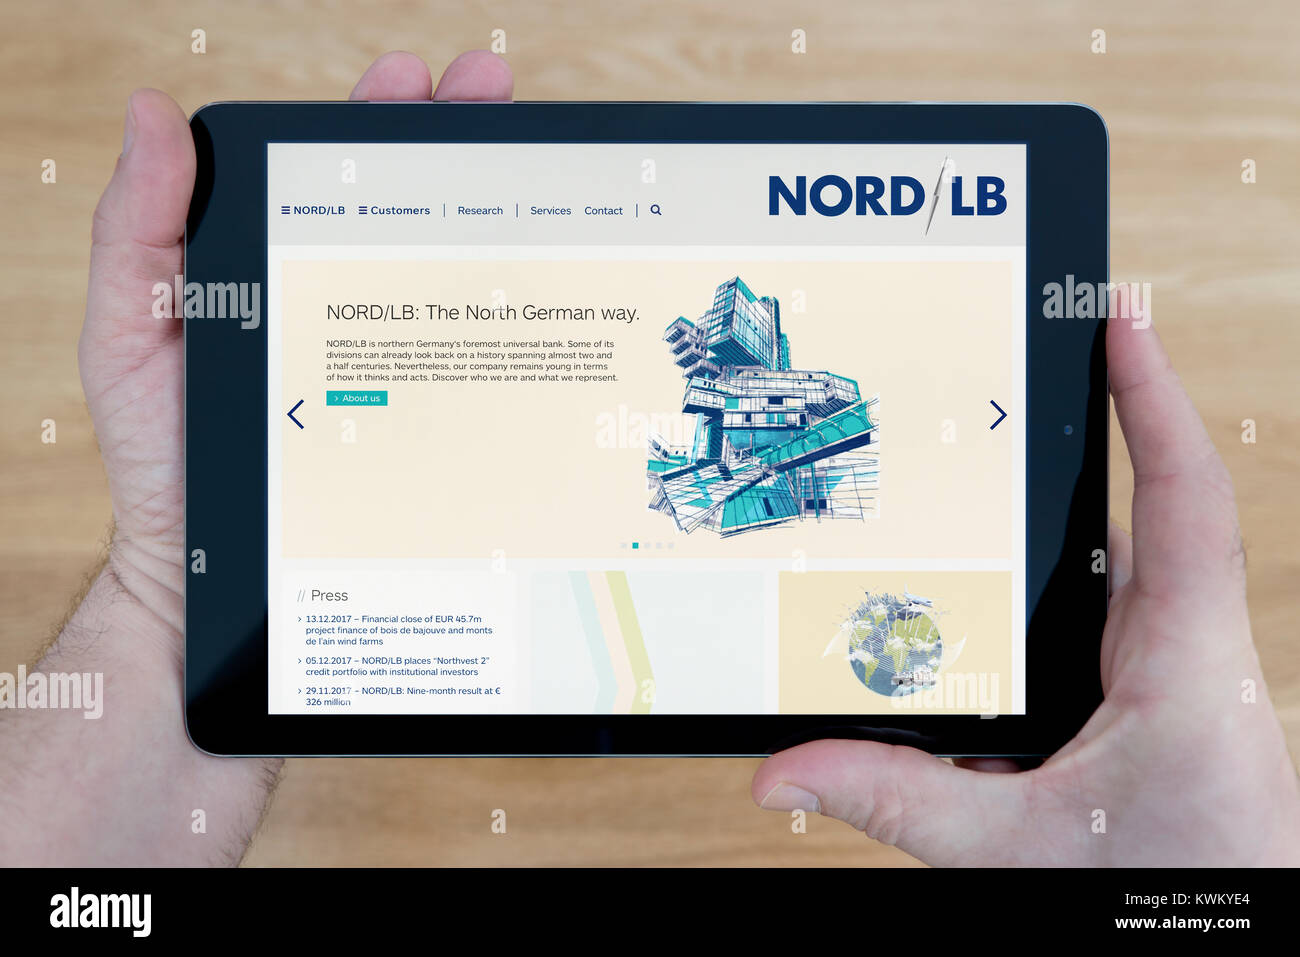 A man looks at the NORD/LB (Norddeutsche Landesbank) website on his iPad tablet device, over a wooden table top - Stock Image